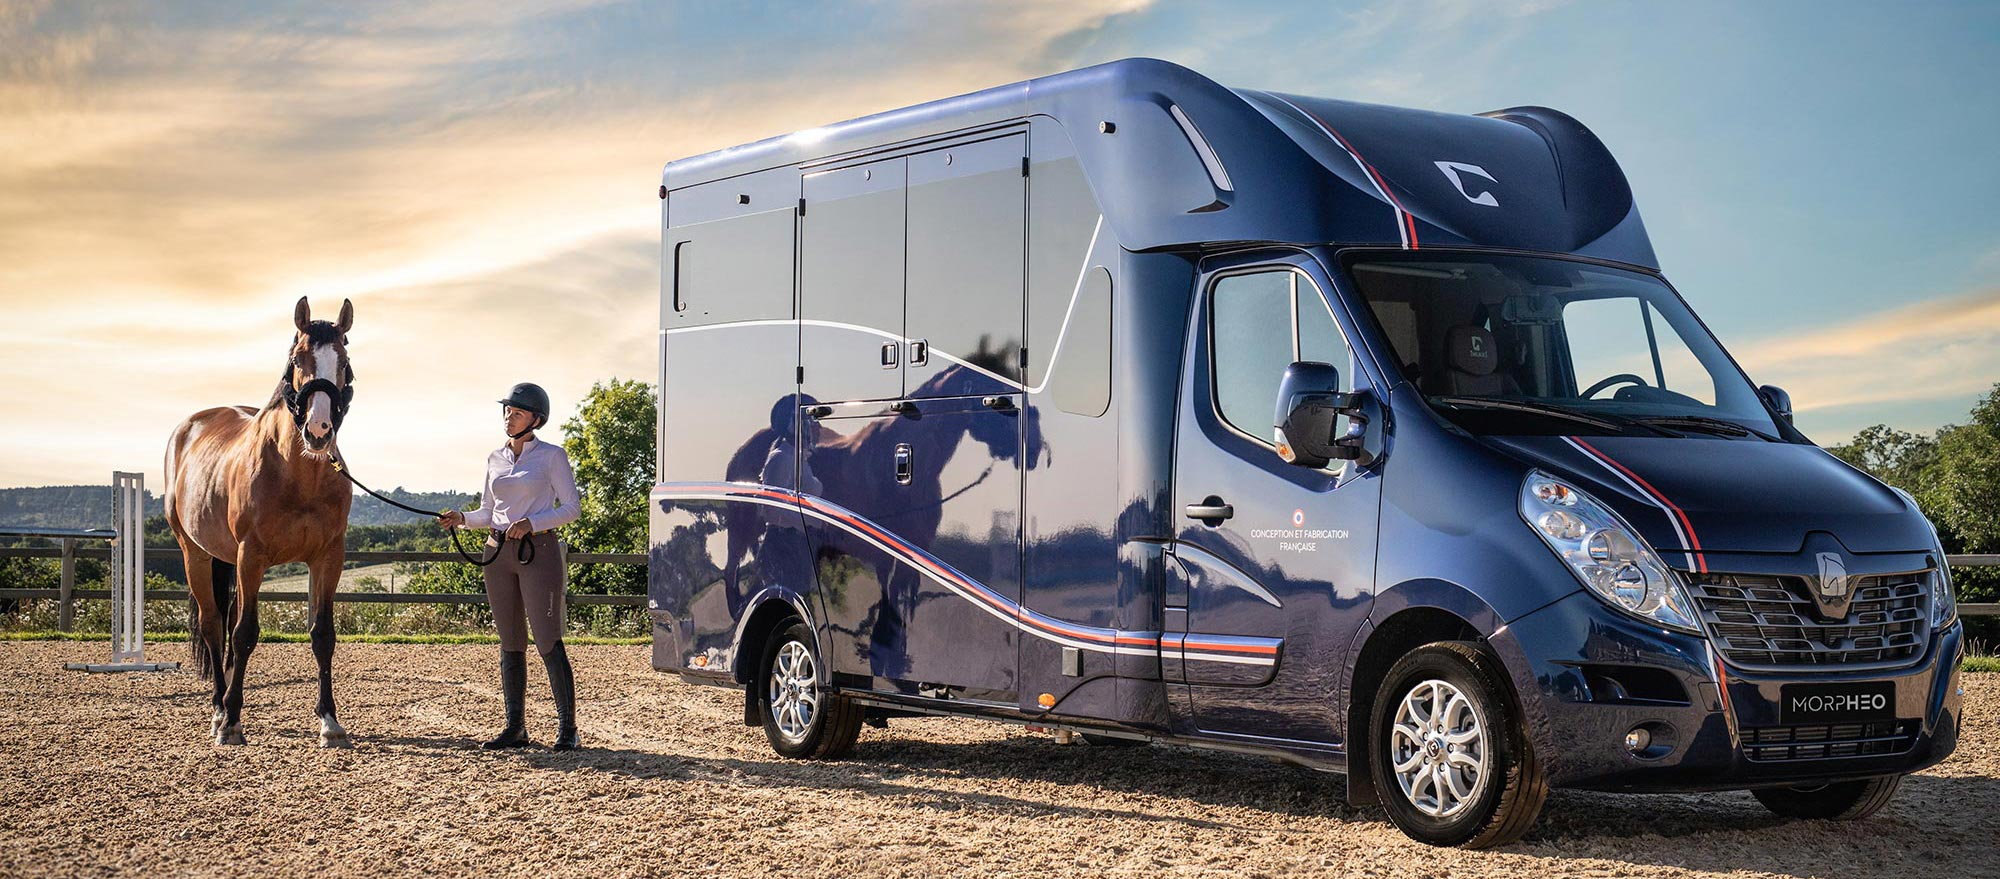 Atacanter Horsebox Hire and Sales